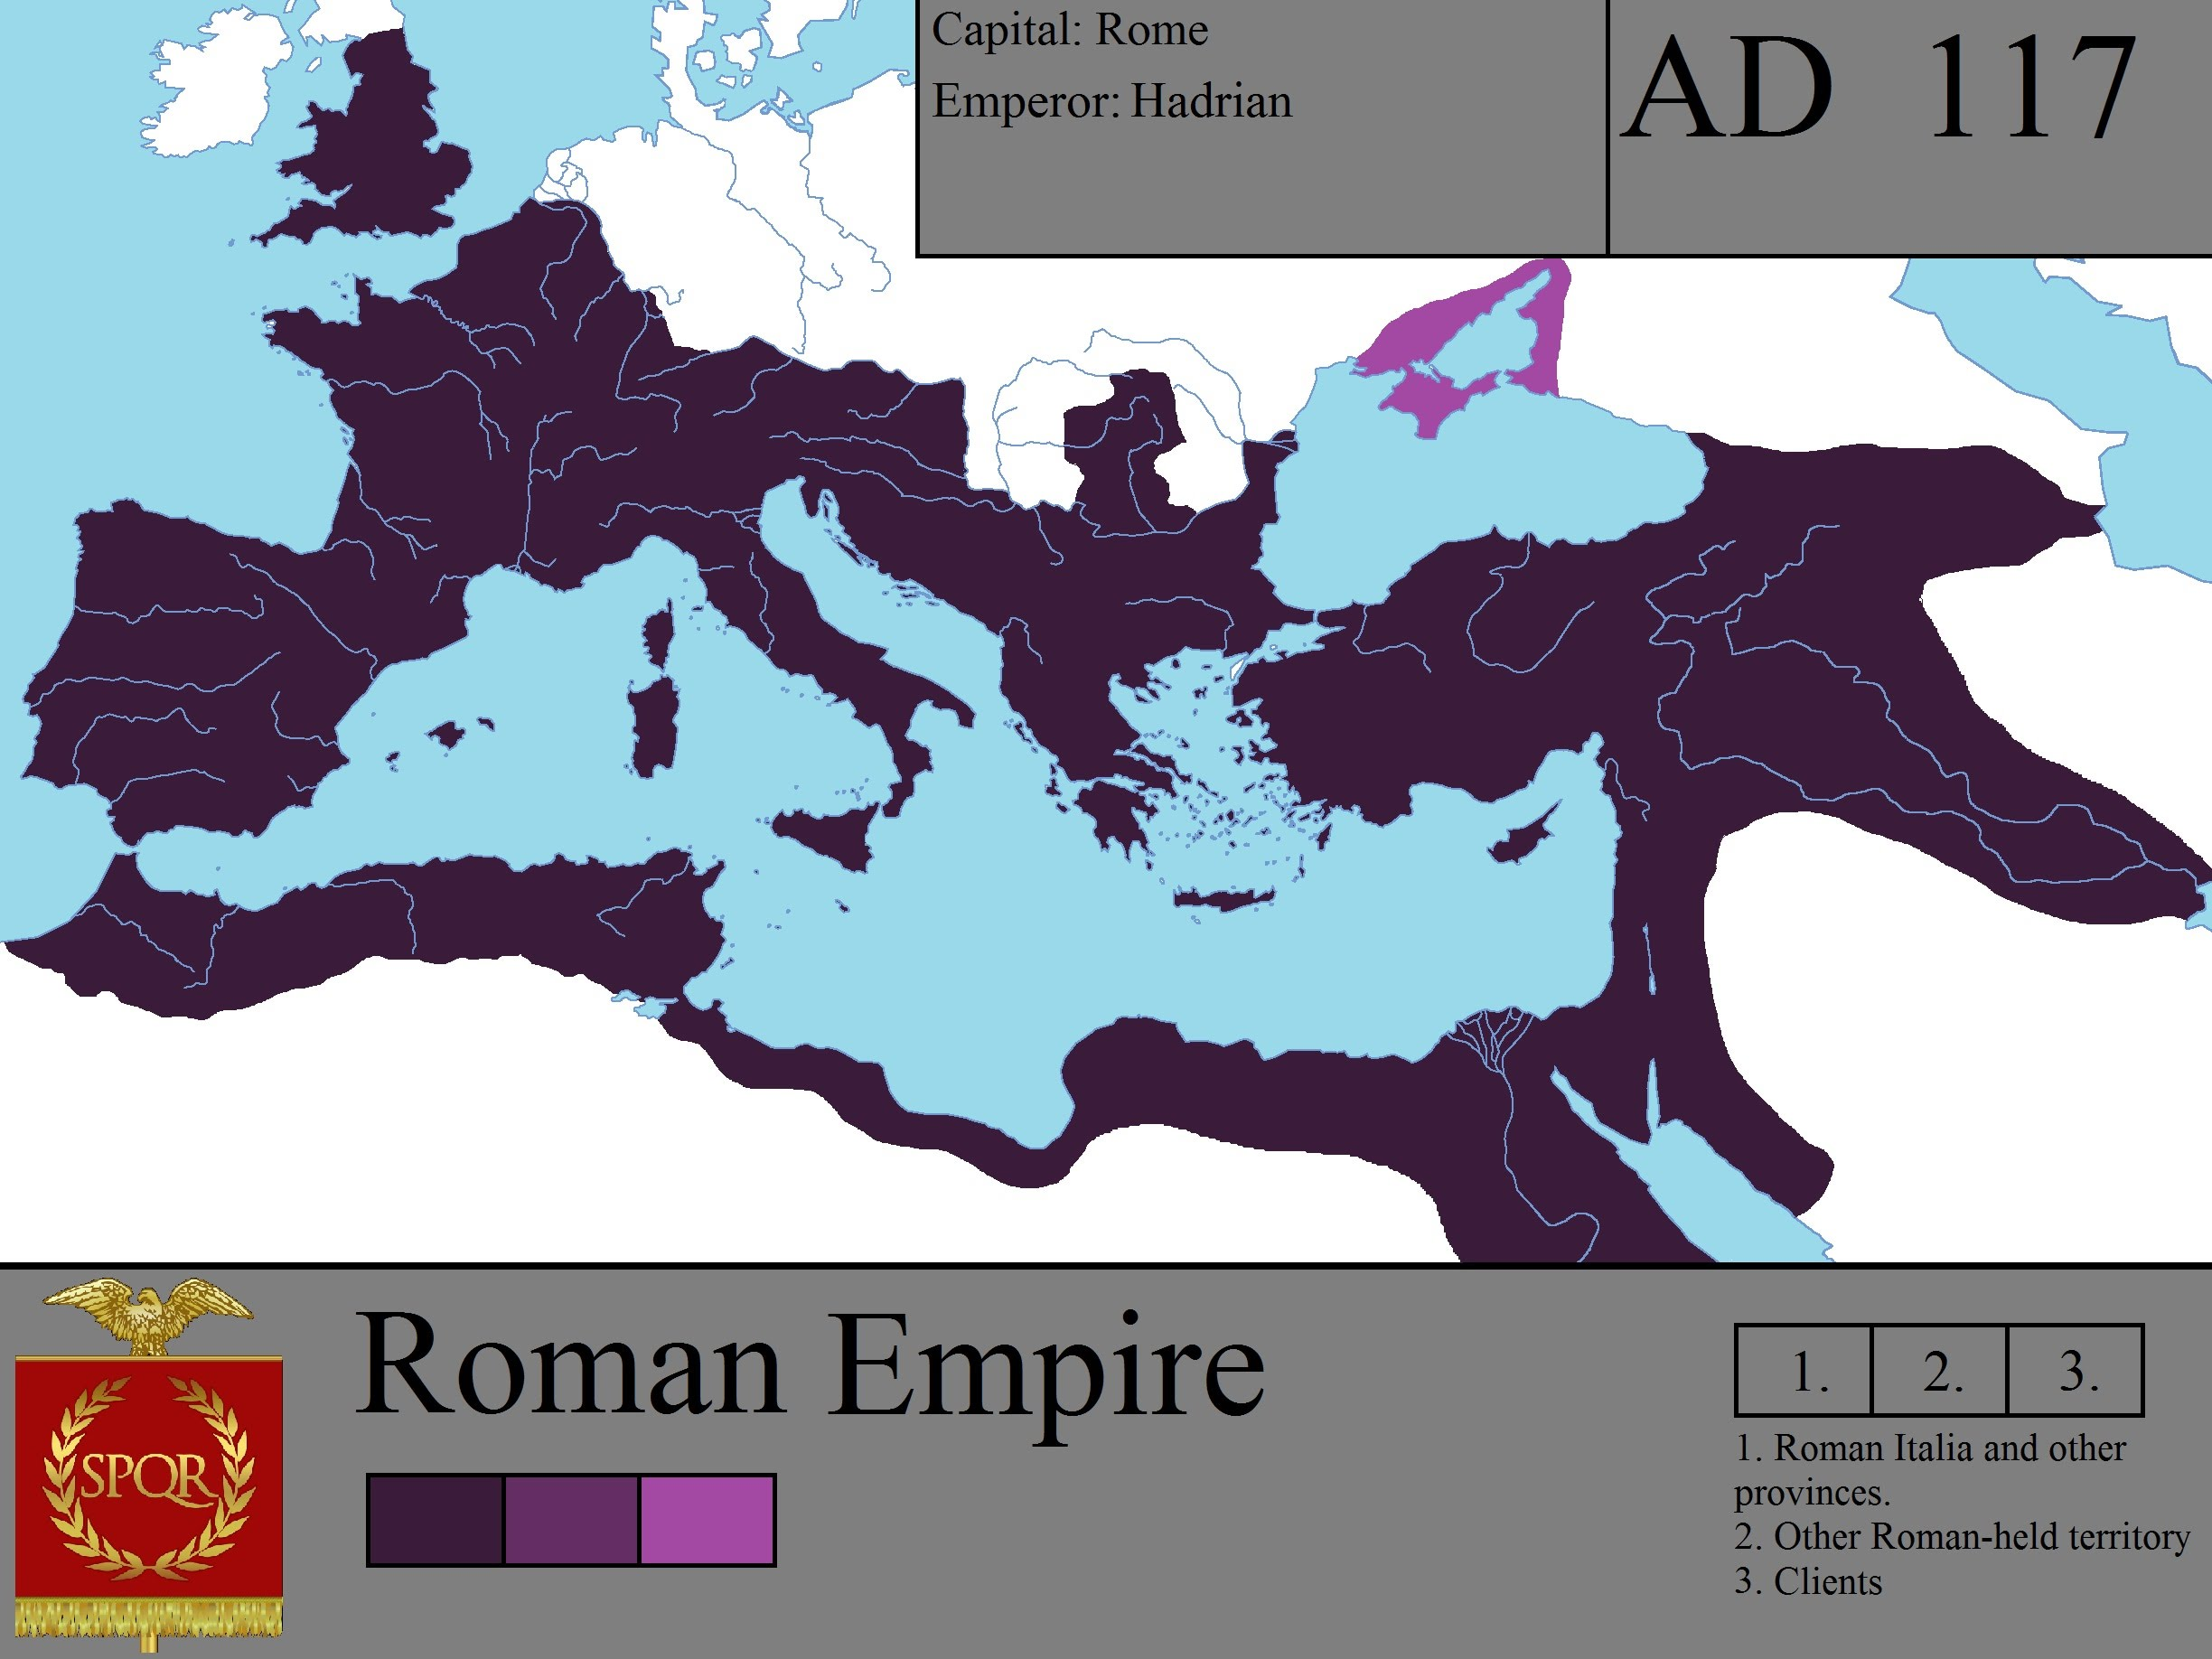 rise and fall of the roman empire thesis statement Rome's collapse inspired many gripping tales, from gibbon's history to dune and battlestar galactica the story of arthur's camelot has its origins in this era of political convulsion, as does a narrative that has taken on vast global importance - the foundation of islam by tom holland.